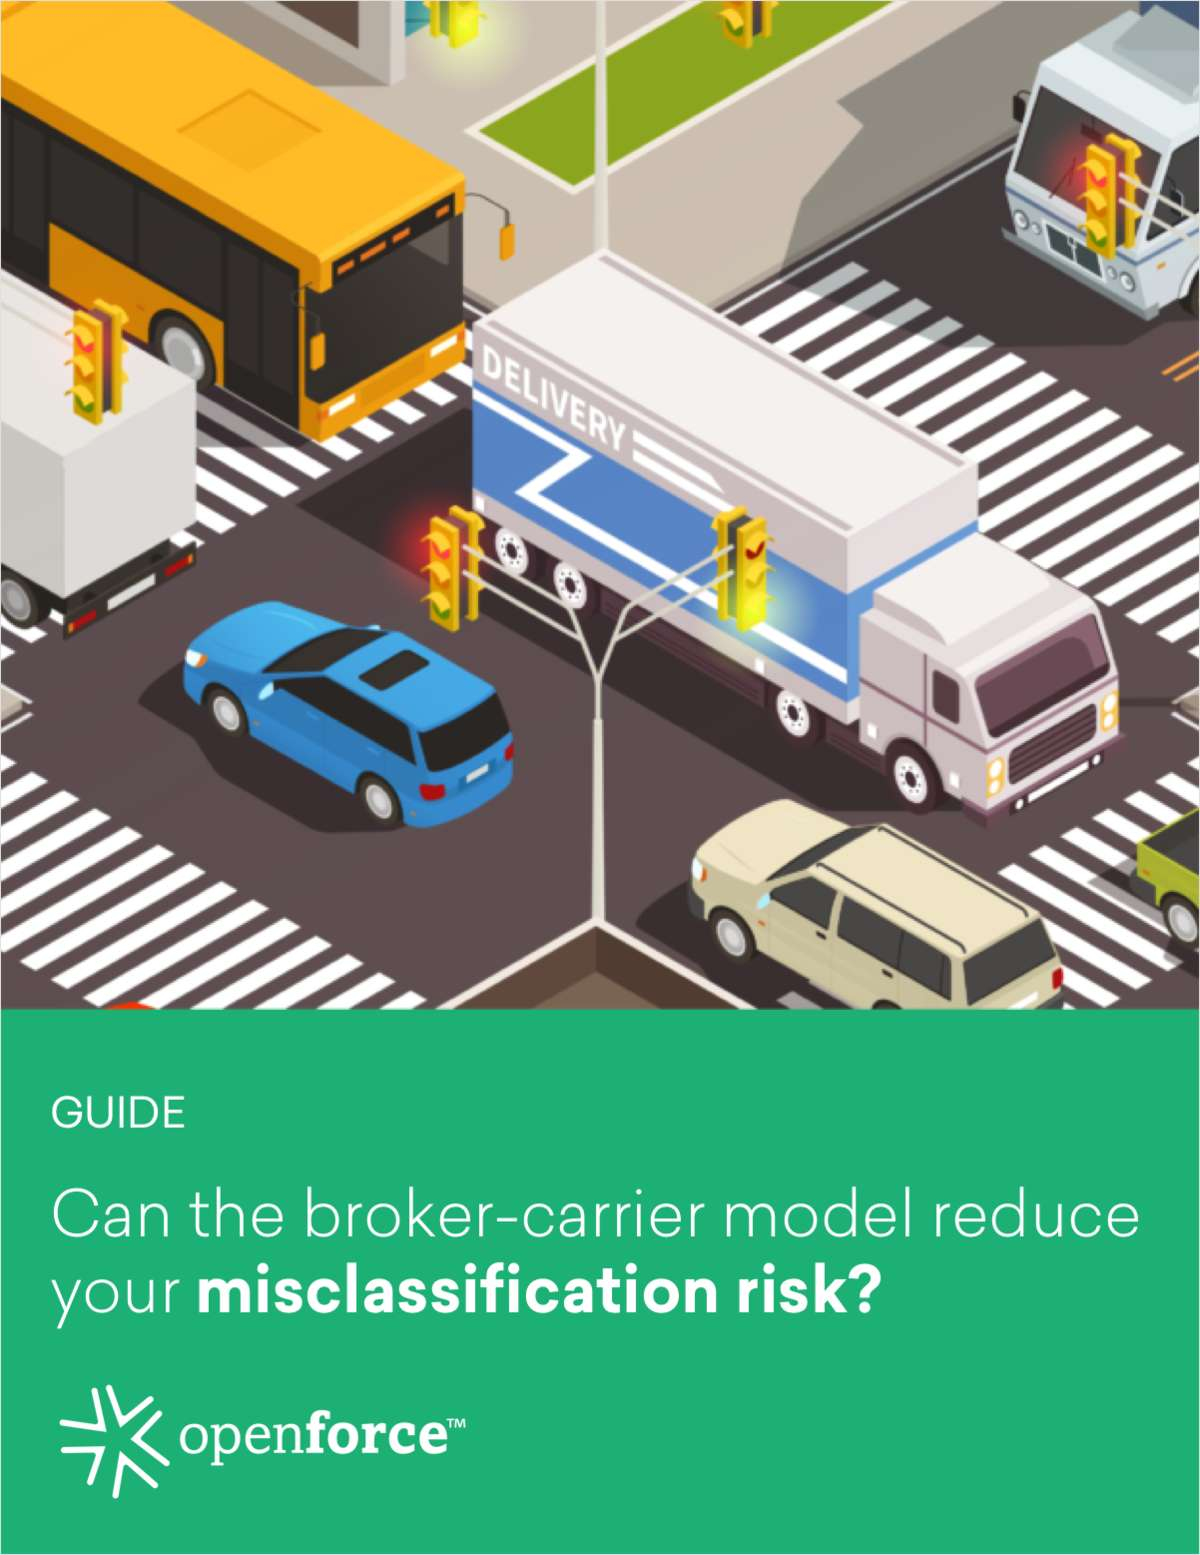 Can the Broker-Carrier Model Reduce Your Misclassification Risk?